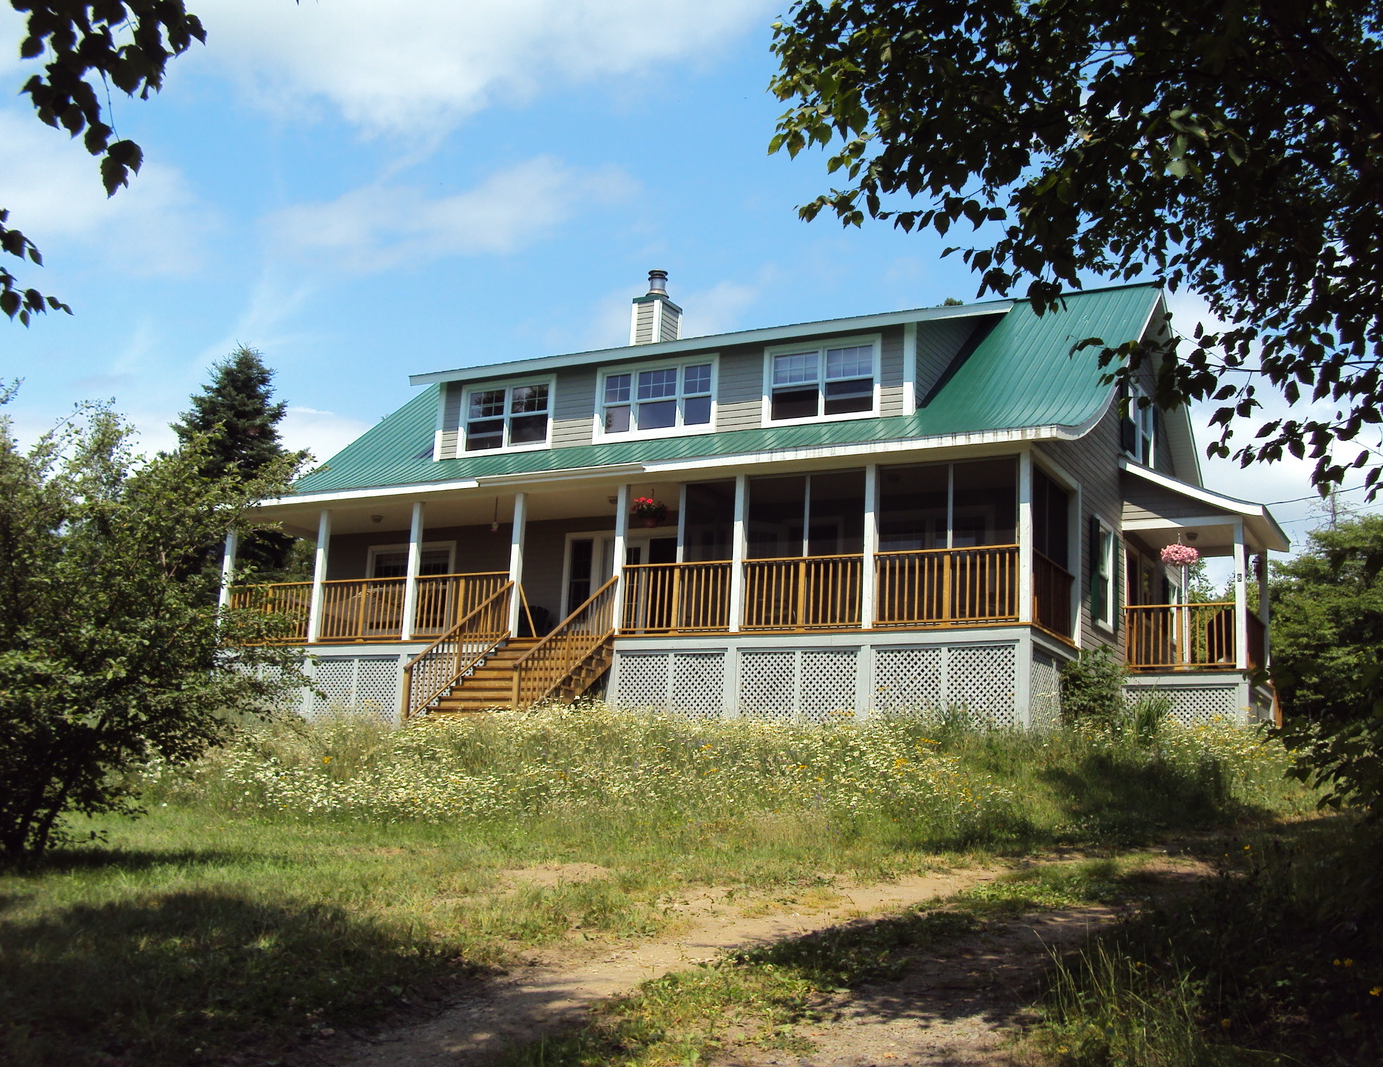 The house sits on the highest portion of the property, and has views of the Saguenay River, where it meets the St Lawrence. The front porch has a screened-in portion, to fend off the black flies in June.